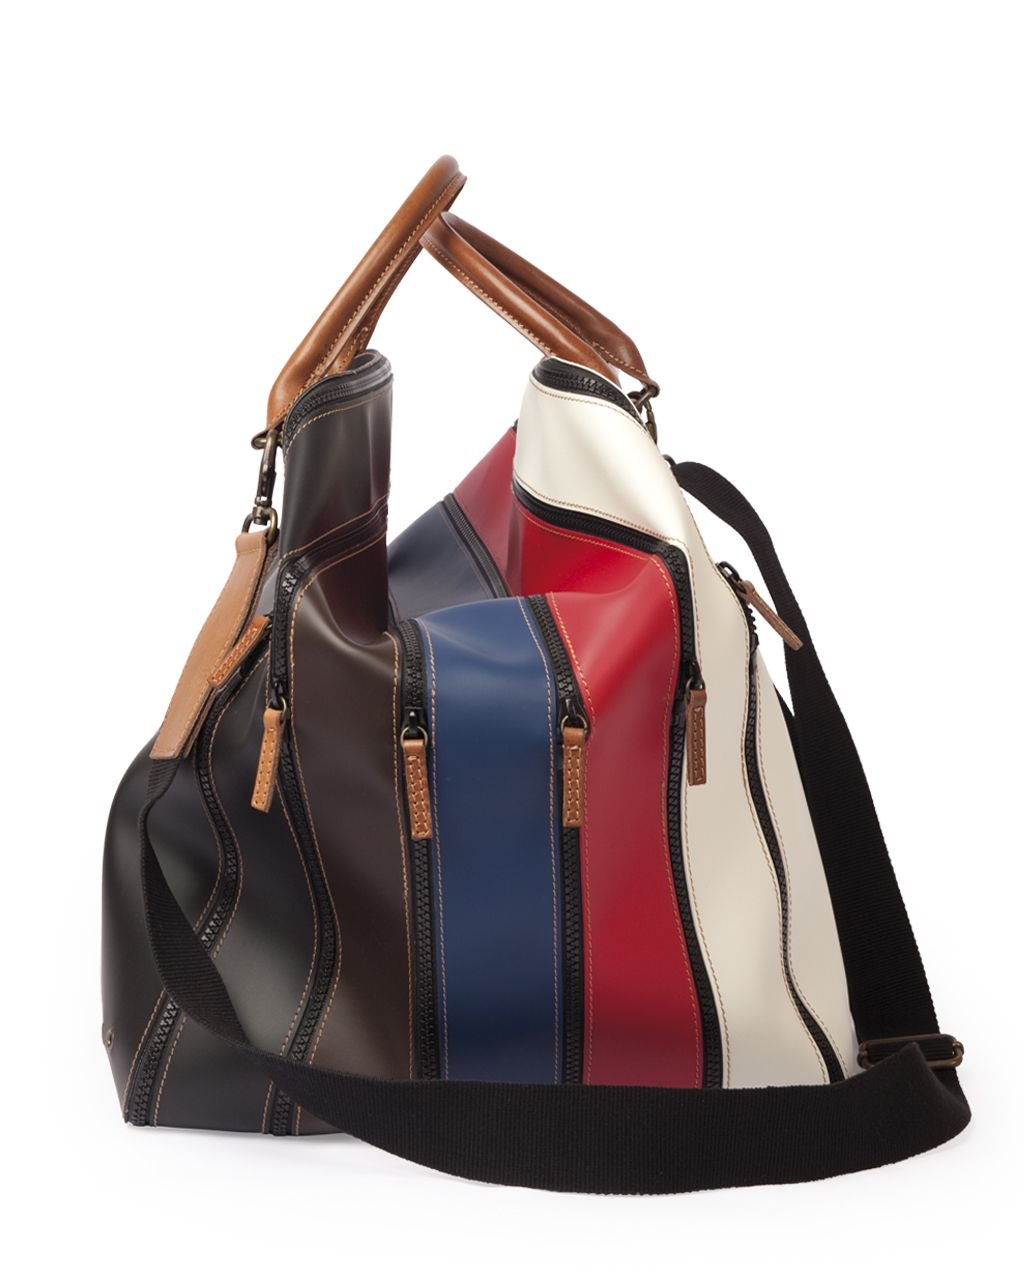 Bag 2.0 • 5 expansion • Color Mix  29 x 37 x 32 (cm) • leather & rubberize canvas  MADE IN ITALY $290